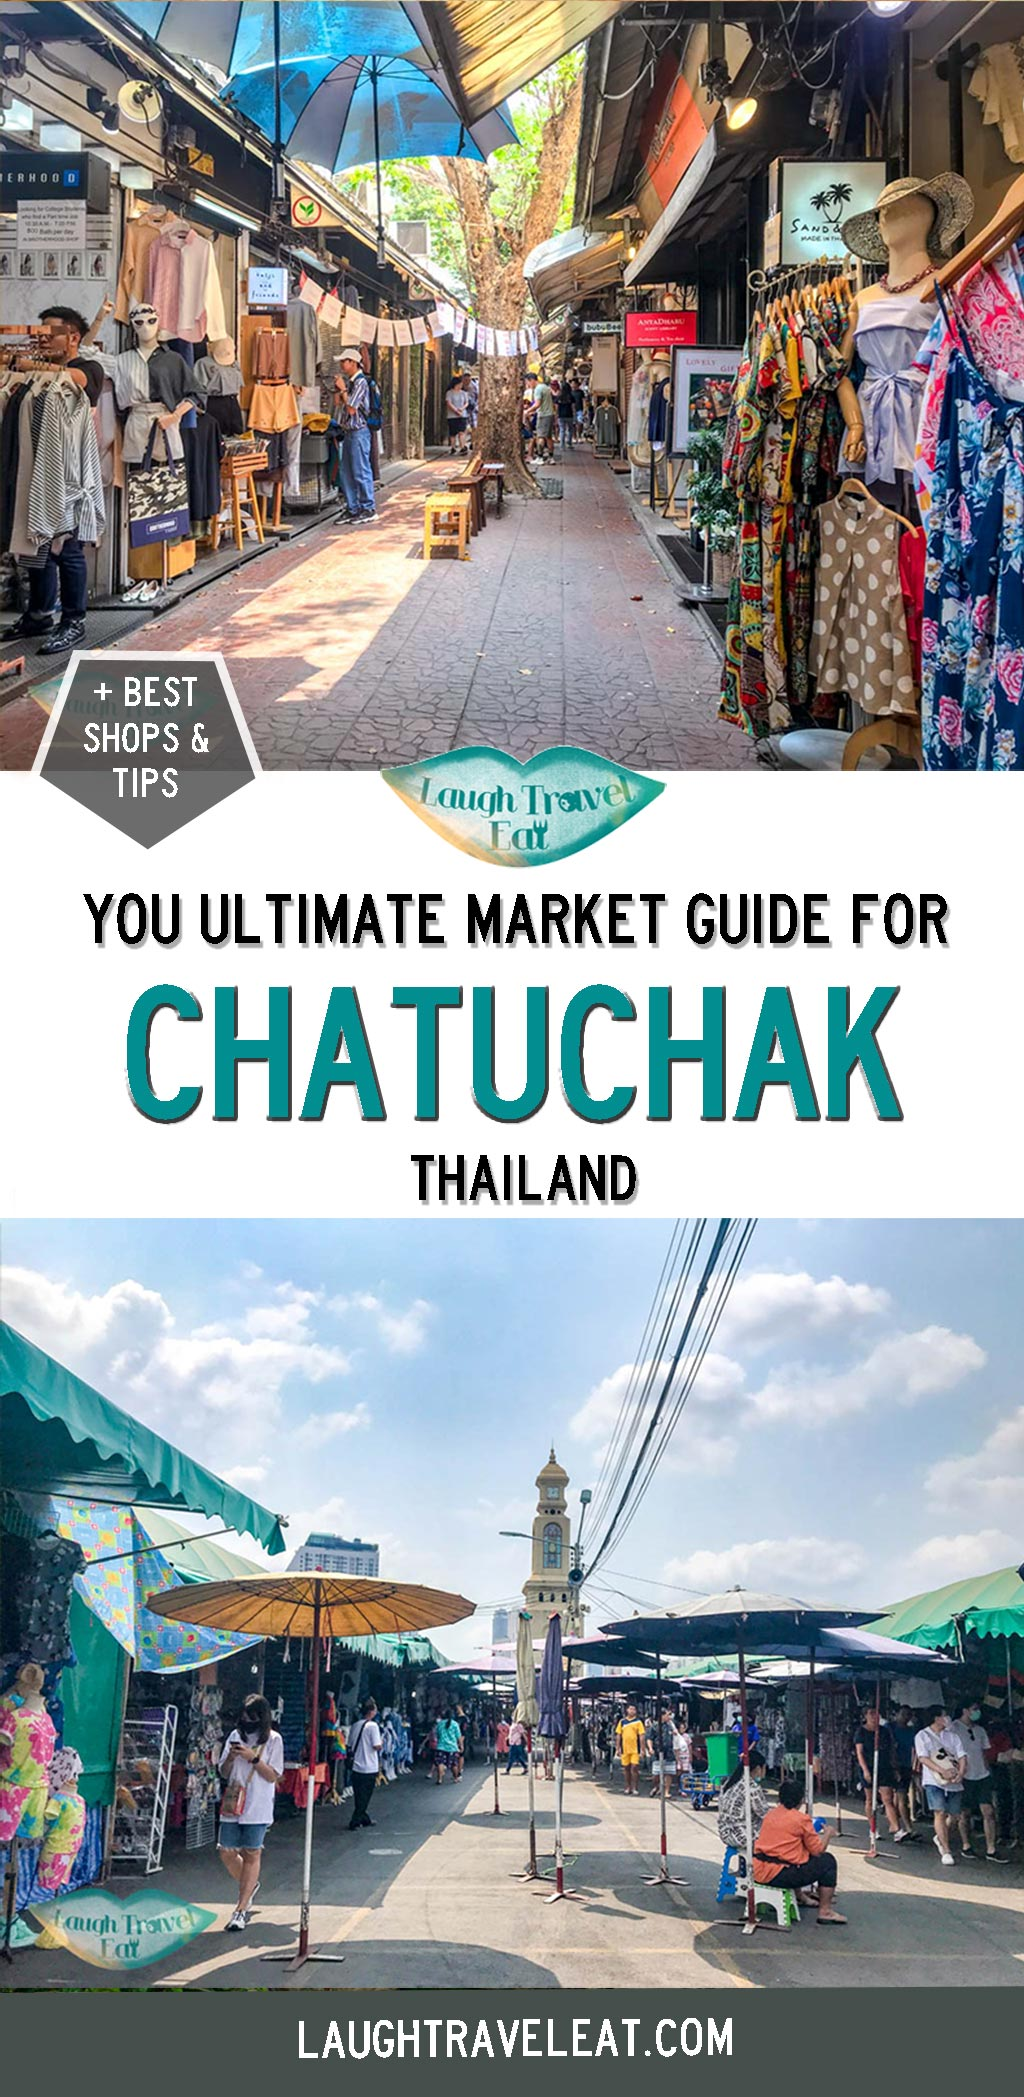 Chatuchak market is the biggest weekend market in Bangkok and Thailand, and also one of my favourite places to shop in the whole wide world. But it's a maze in itself so here's where this Chatuchak Market guide comes in.